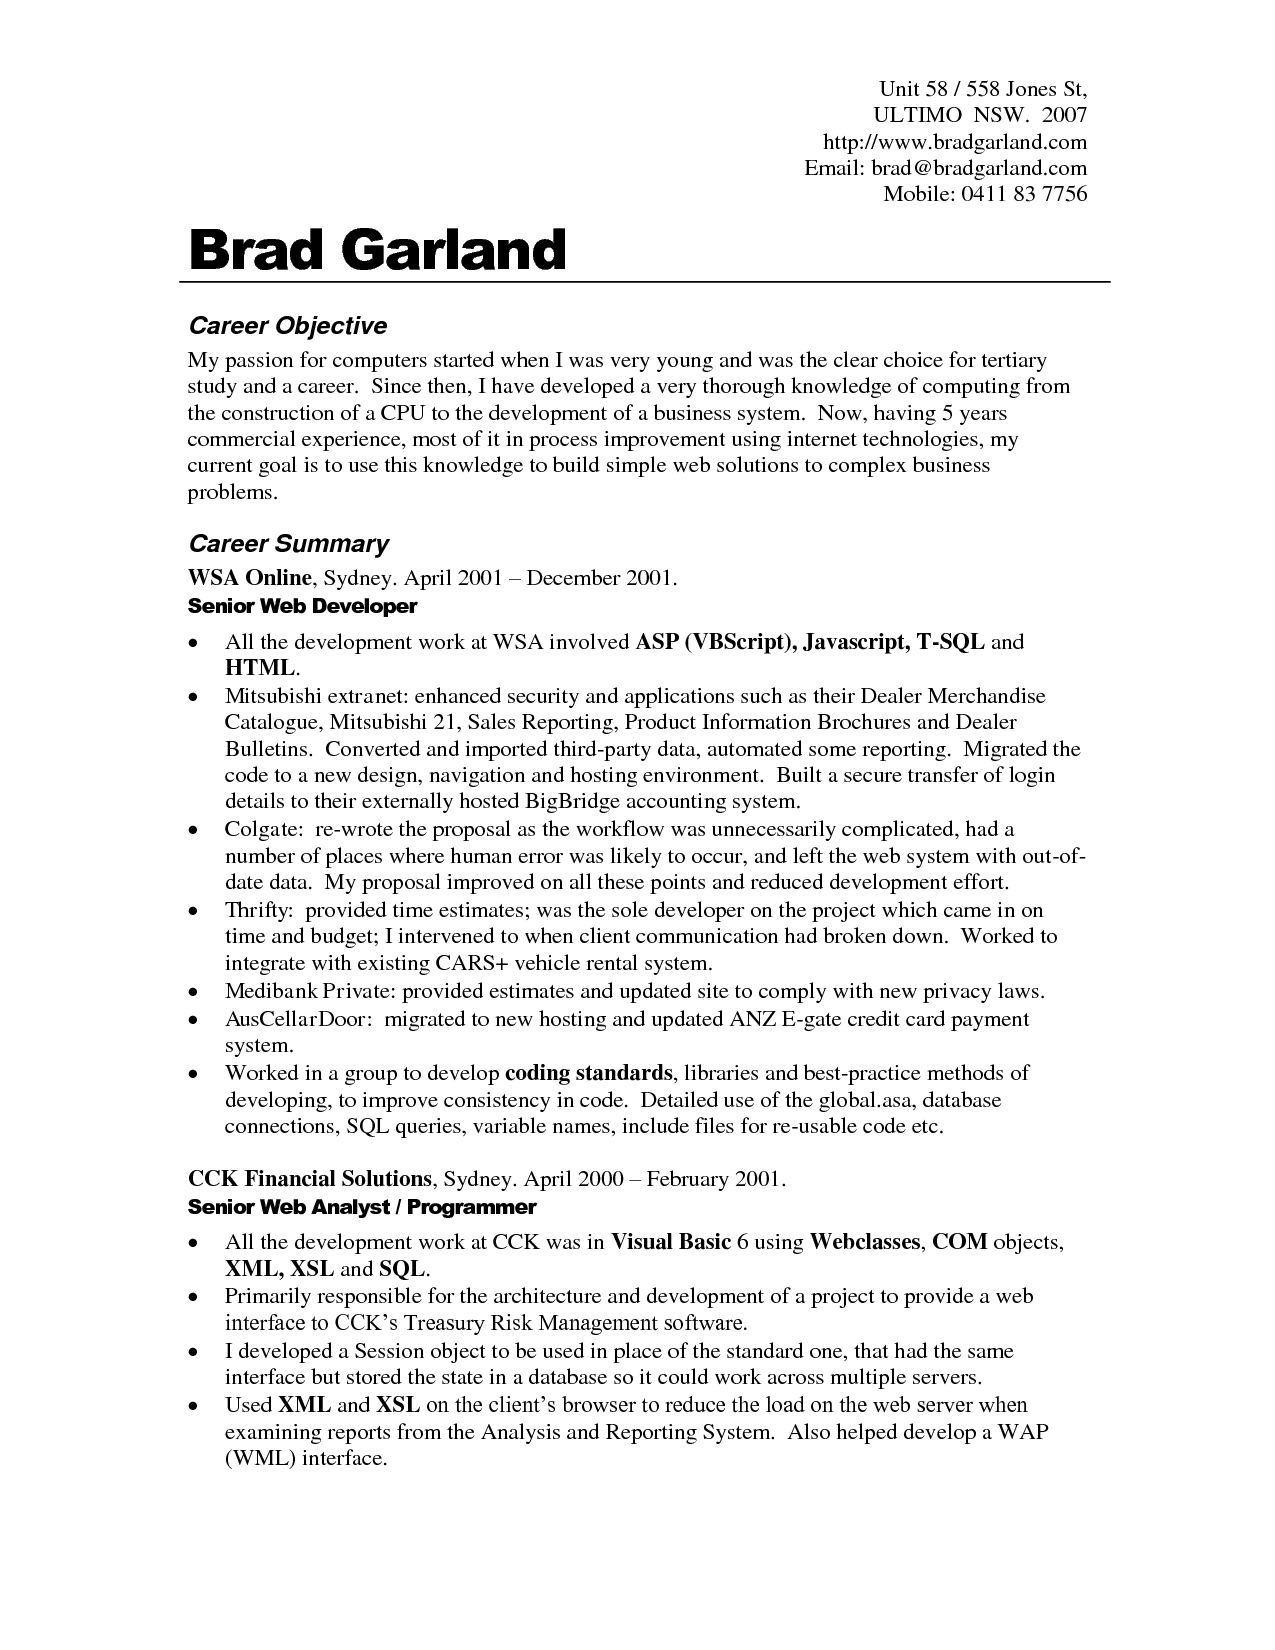 An Objective For A Resume Sample Resume Action Verbs For Lawyers Formatting Back Post